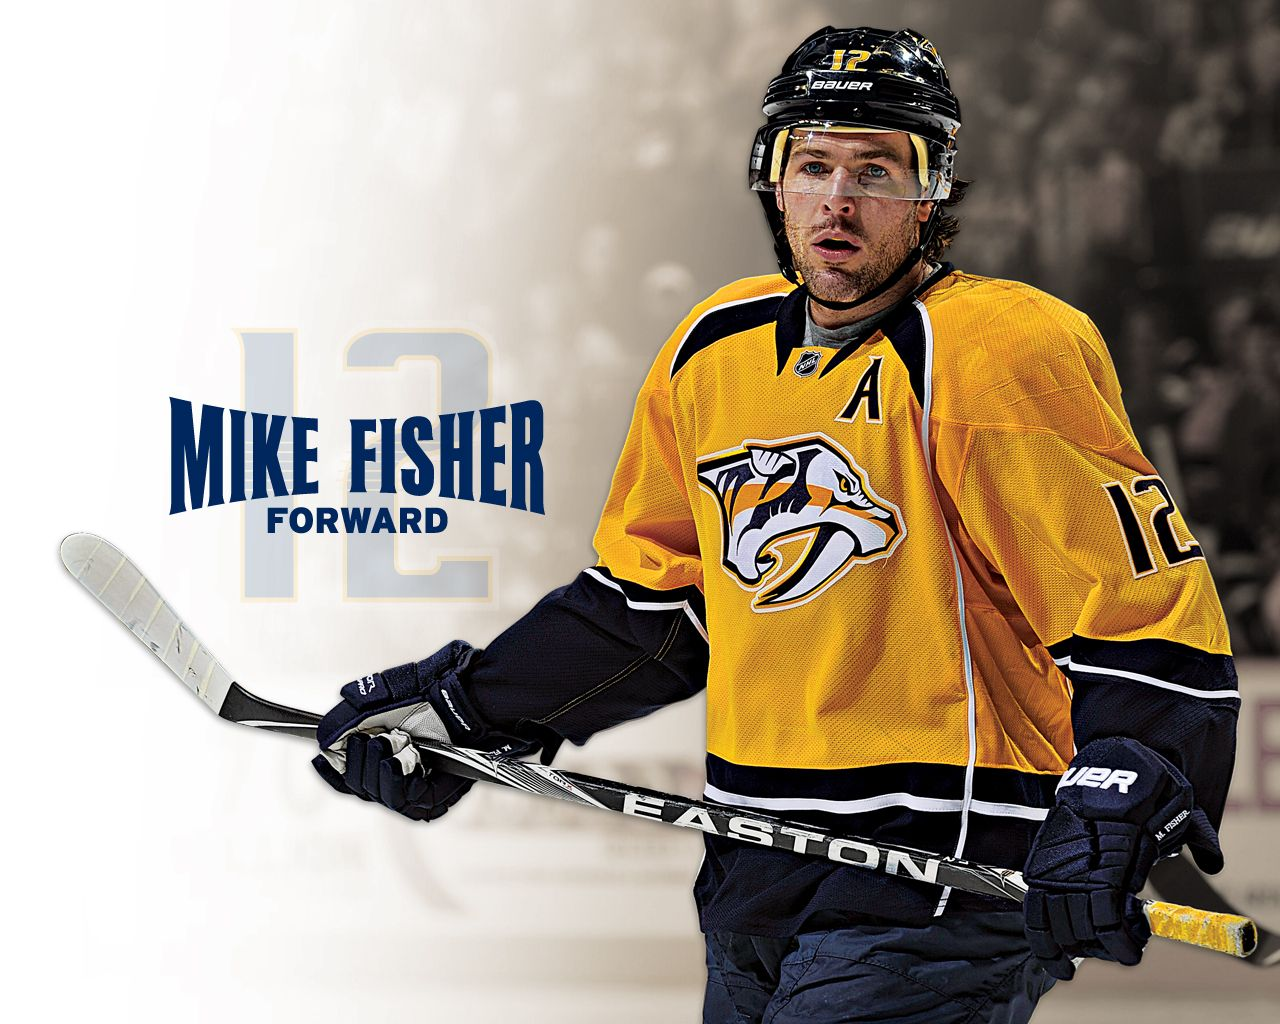 mike fisher facebookmike fisher nhl, mike fisher racing driver, mike fisher shoes, mike fisher facebook, mike fisher and son, mike fisher instagram, mike fisher wife, mike fisher salary, mike fisher twitter, mike fisher net worth, mike fisher and carrie underwood, mike fisher hockey, mike fisher nashville predators, mike fisher predators, mike fisher contract, mike fisher i am second, mike fisher injury, mike fisher stats, mike fisher carrie underwood house, mike fisher and carrie underwood baby